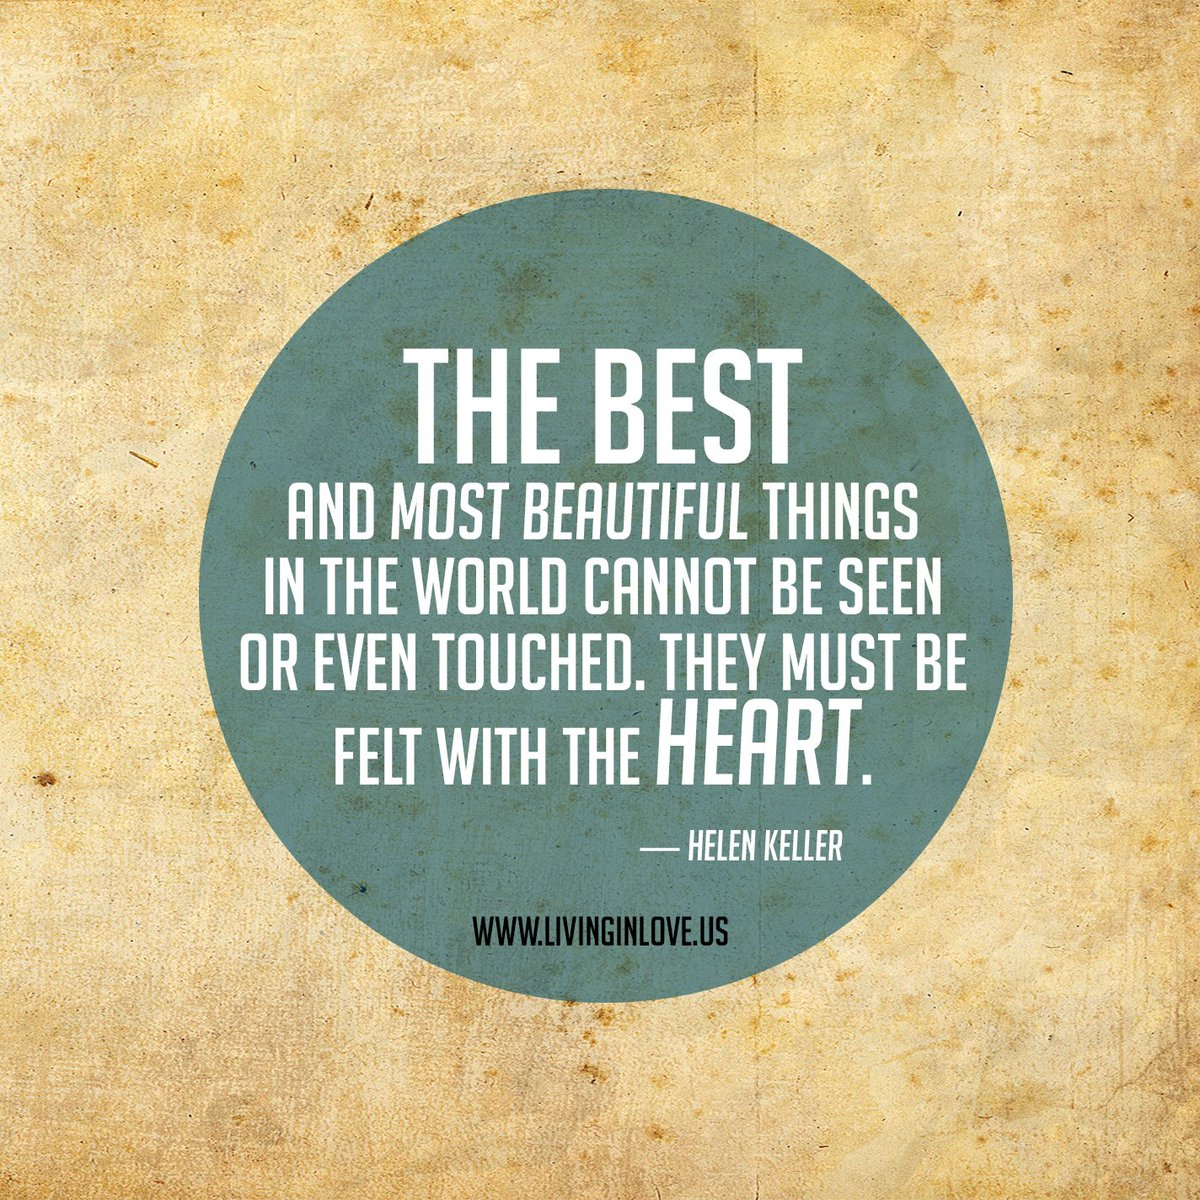 The best and most beautiful things must be felt with the heart.  #EFT #LOVE #Relationship #Connection https://t.co/bif3IWEECI